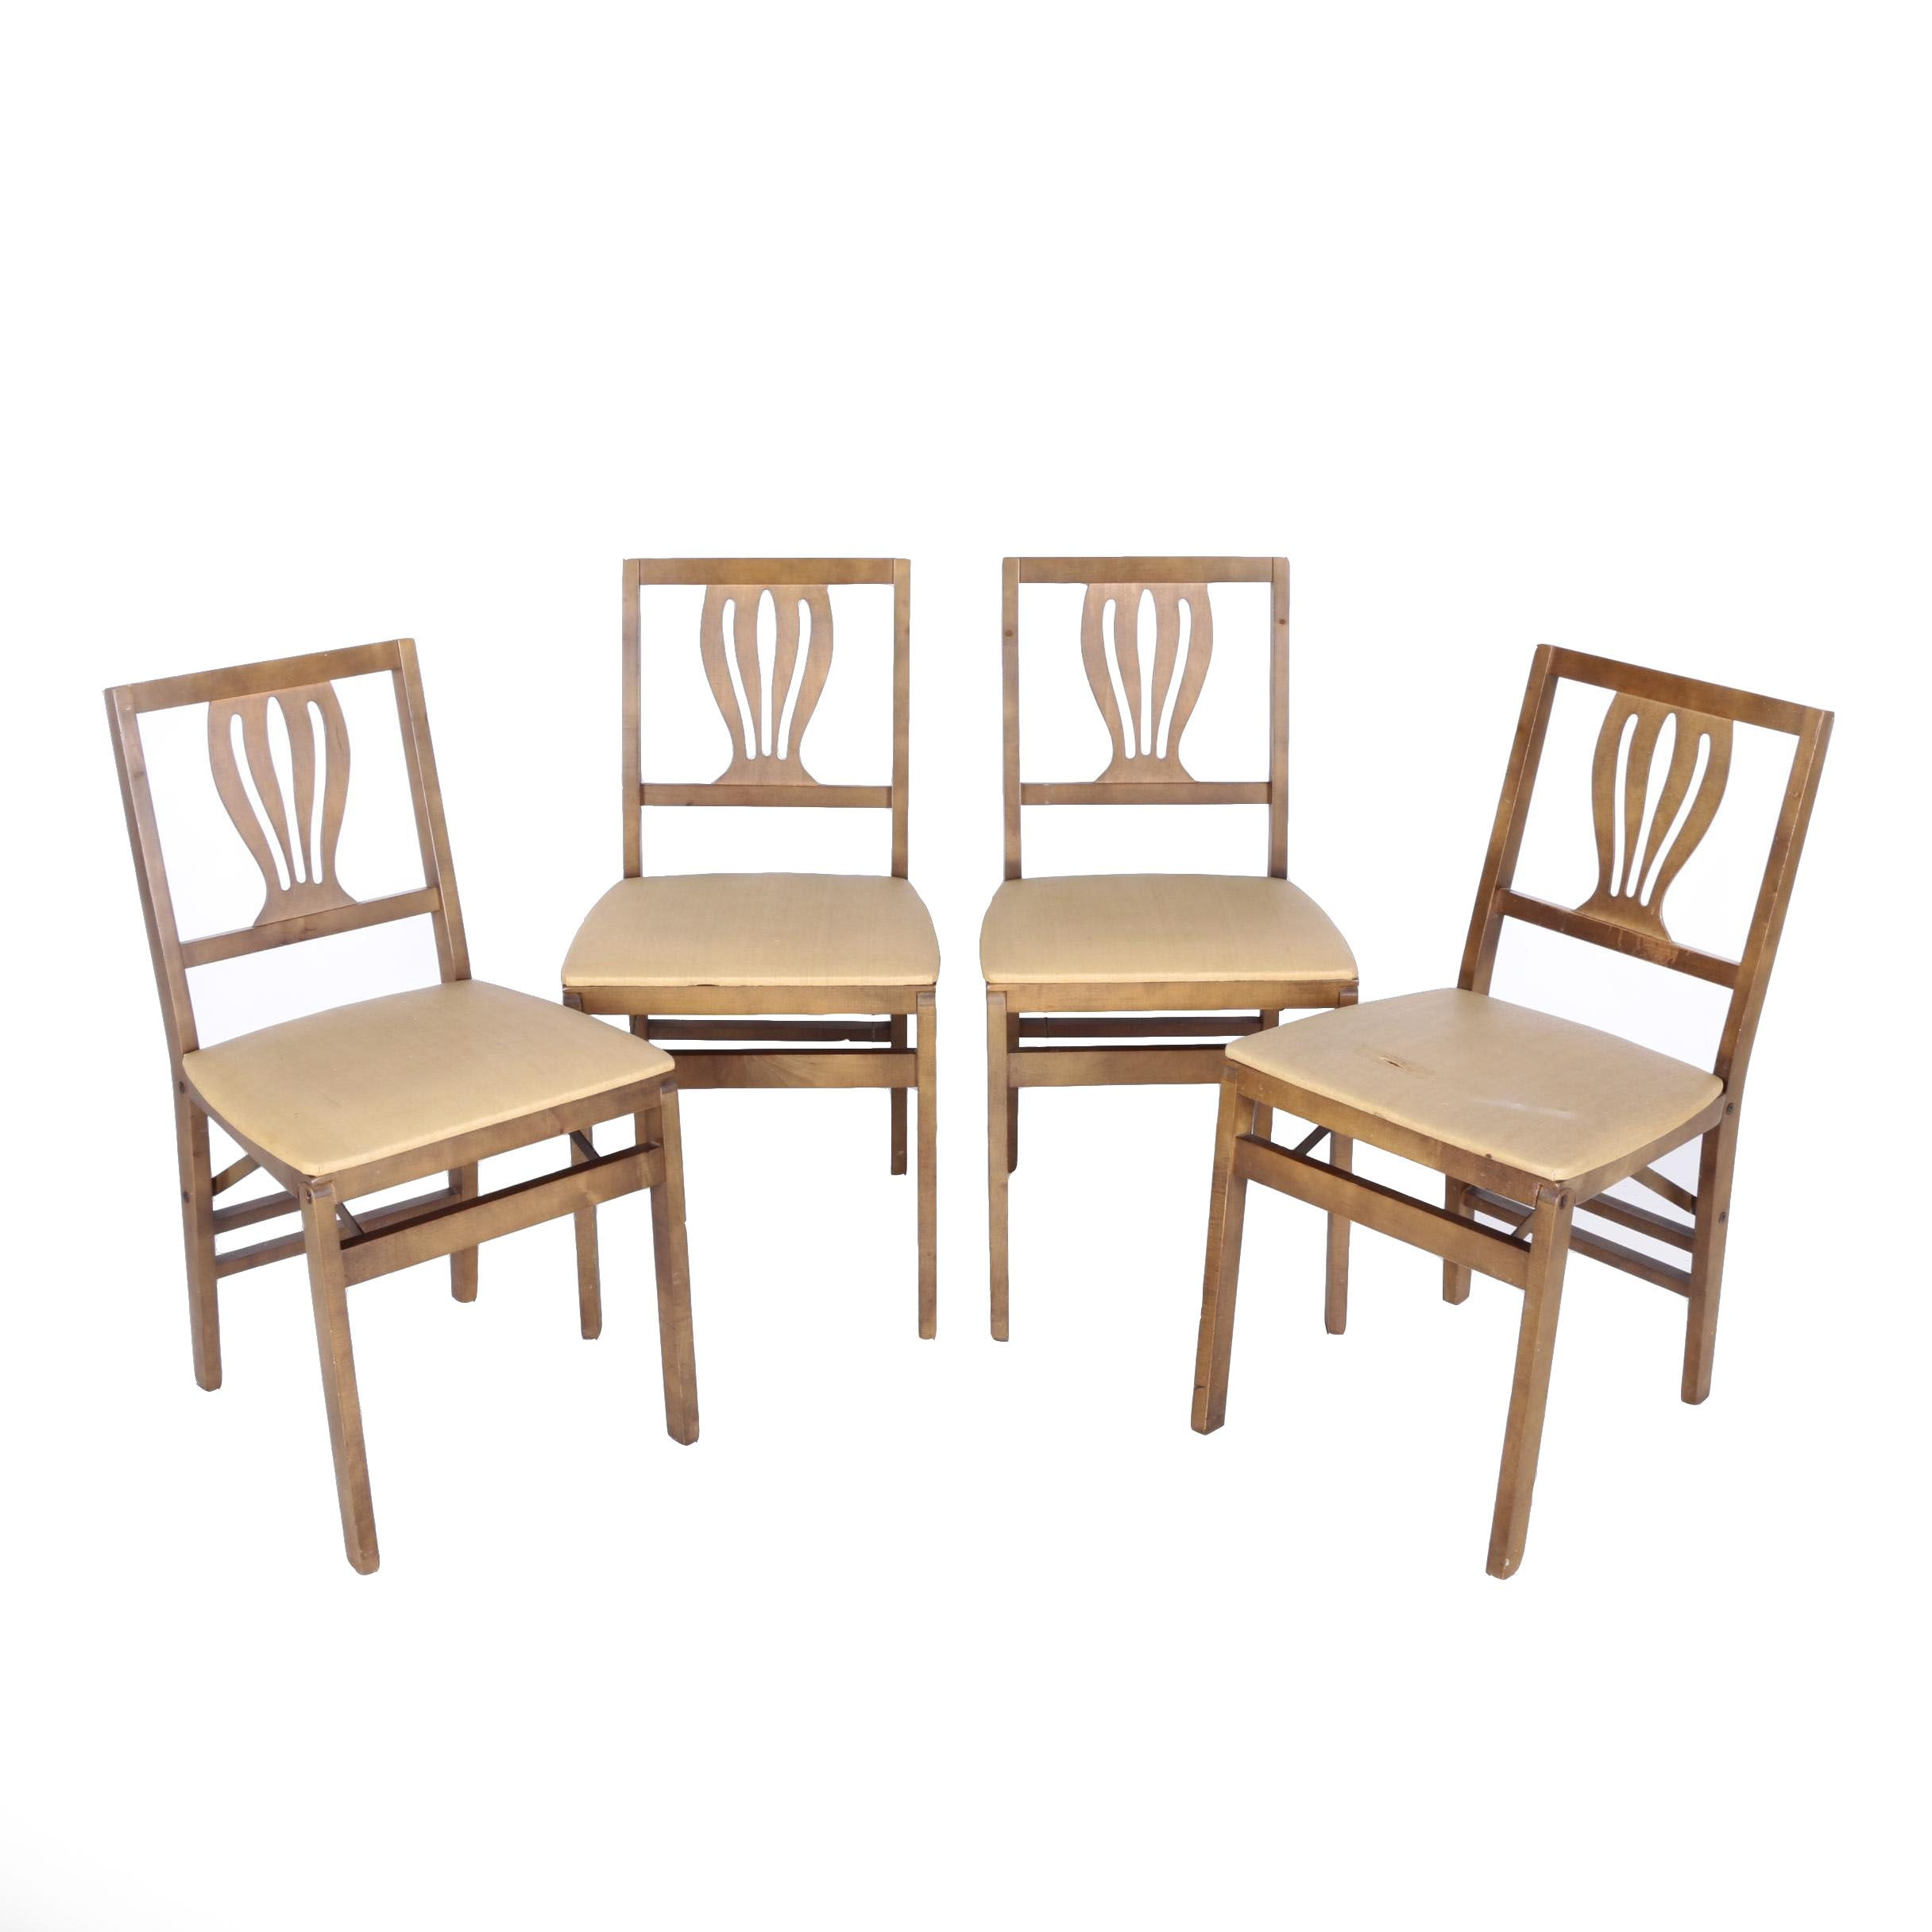 Vintage Art Deco Style Folding Chairs by Stakmore Co.